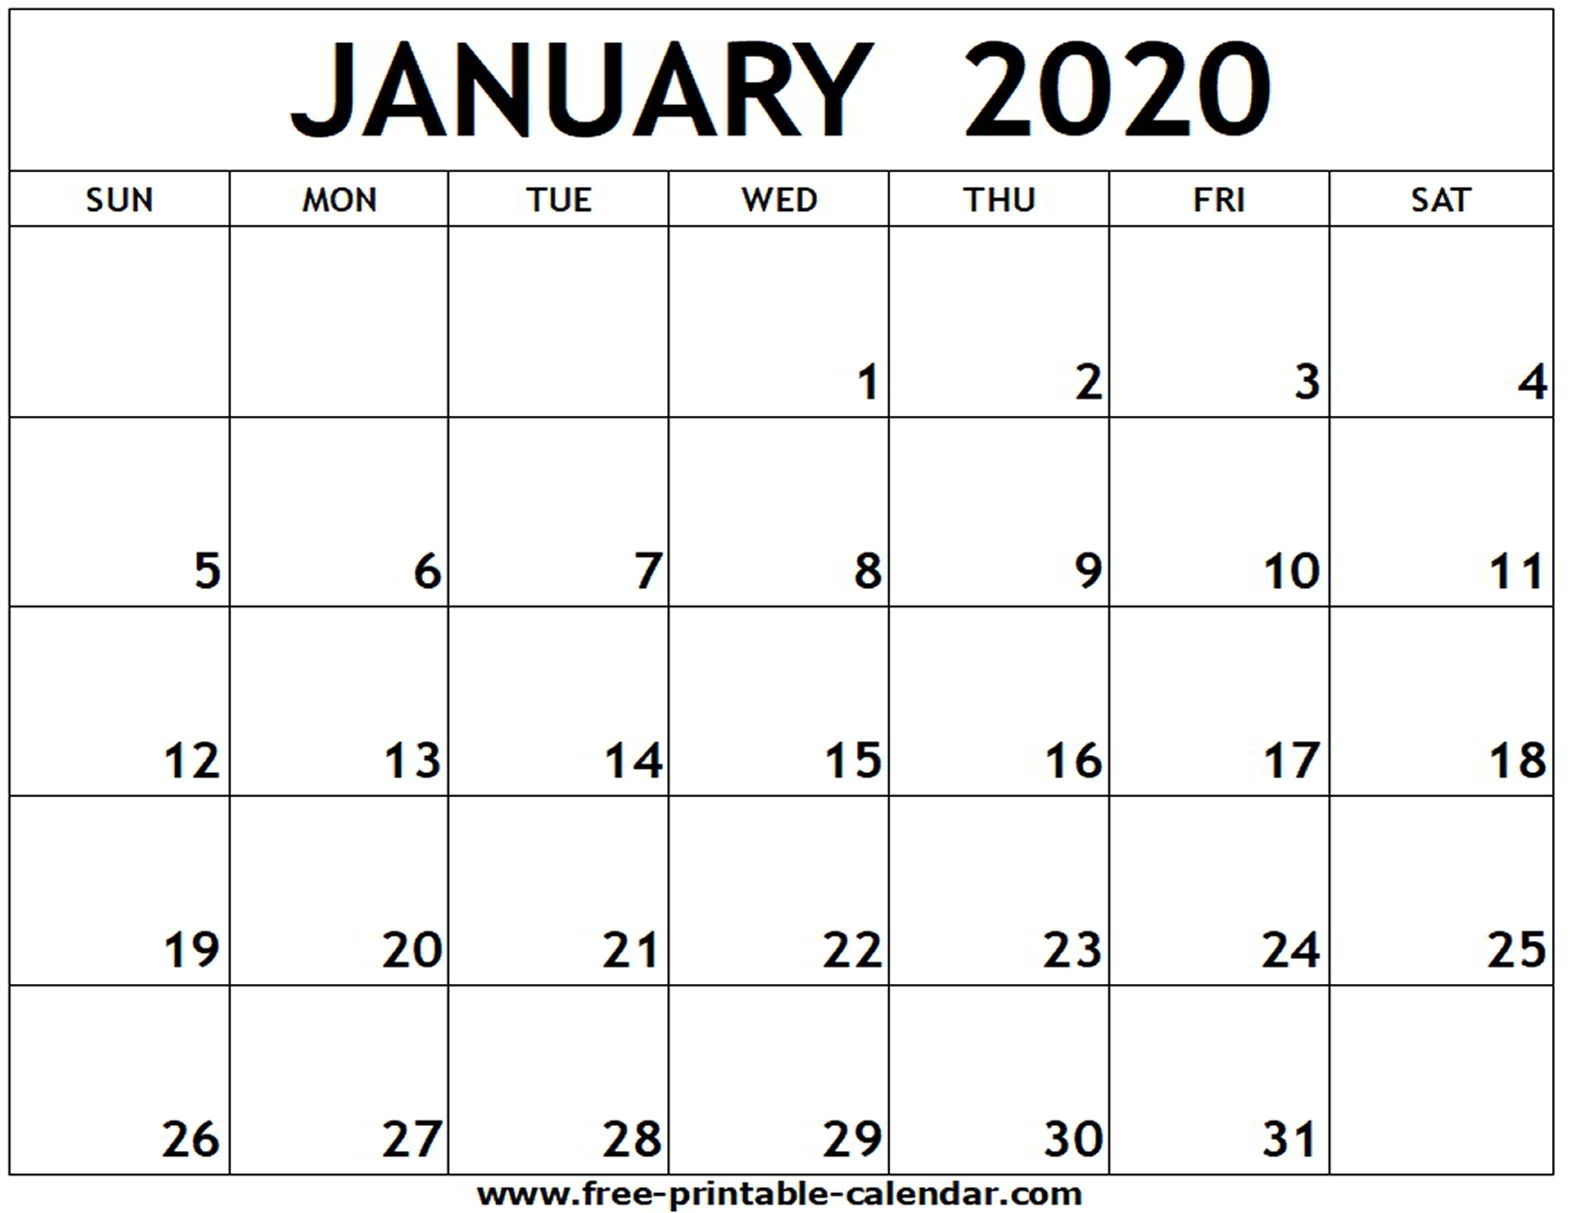 January 2020 Printable Calendar - Free-Printable-Calendar within Free Printable Monthly Calendar For Year 2020